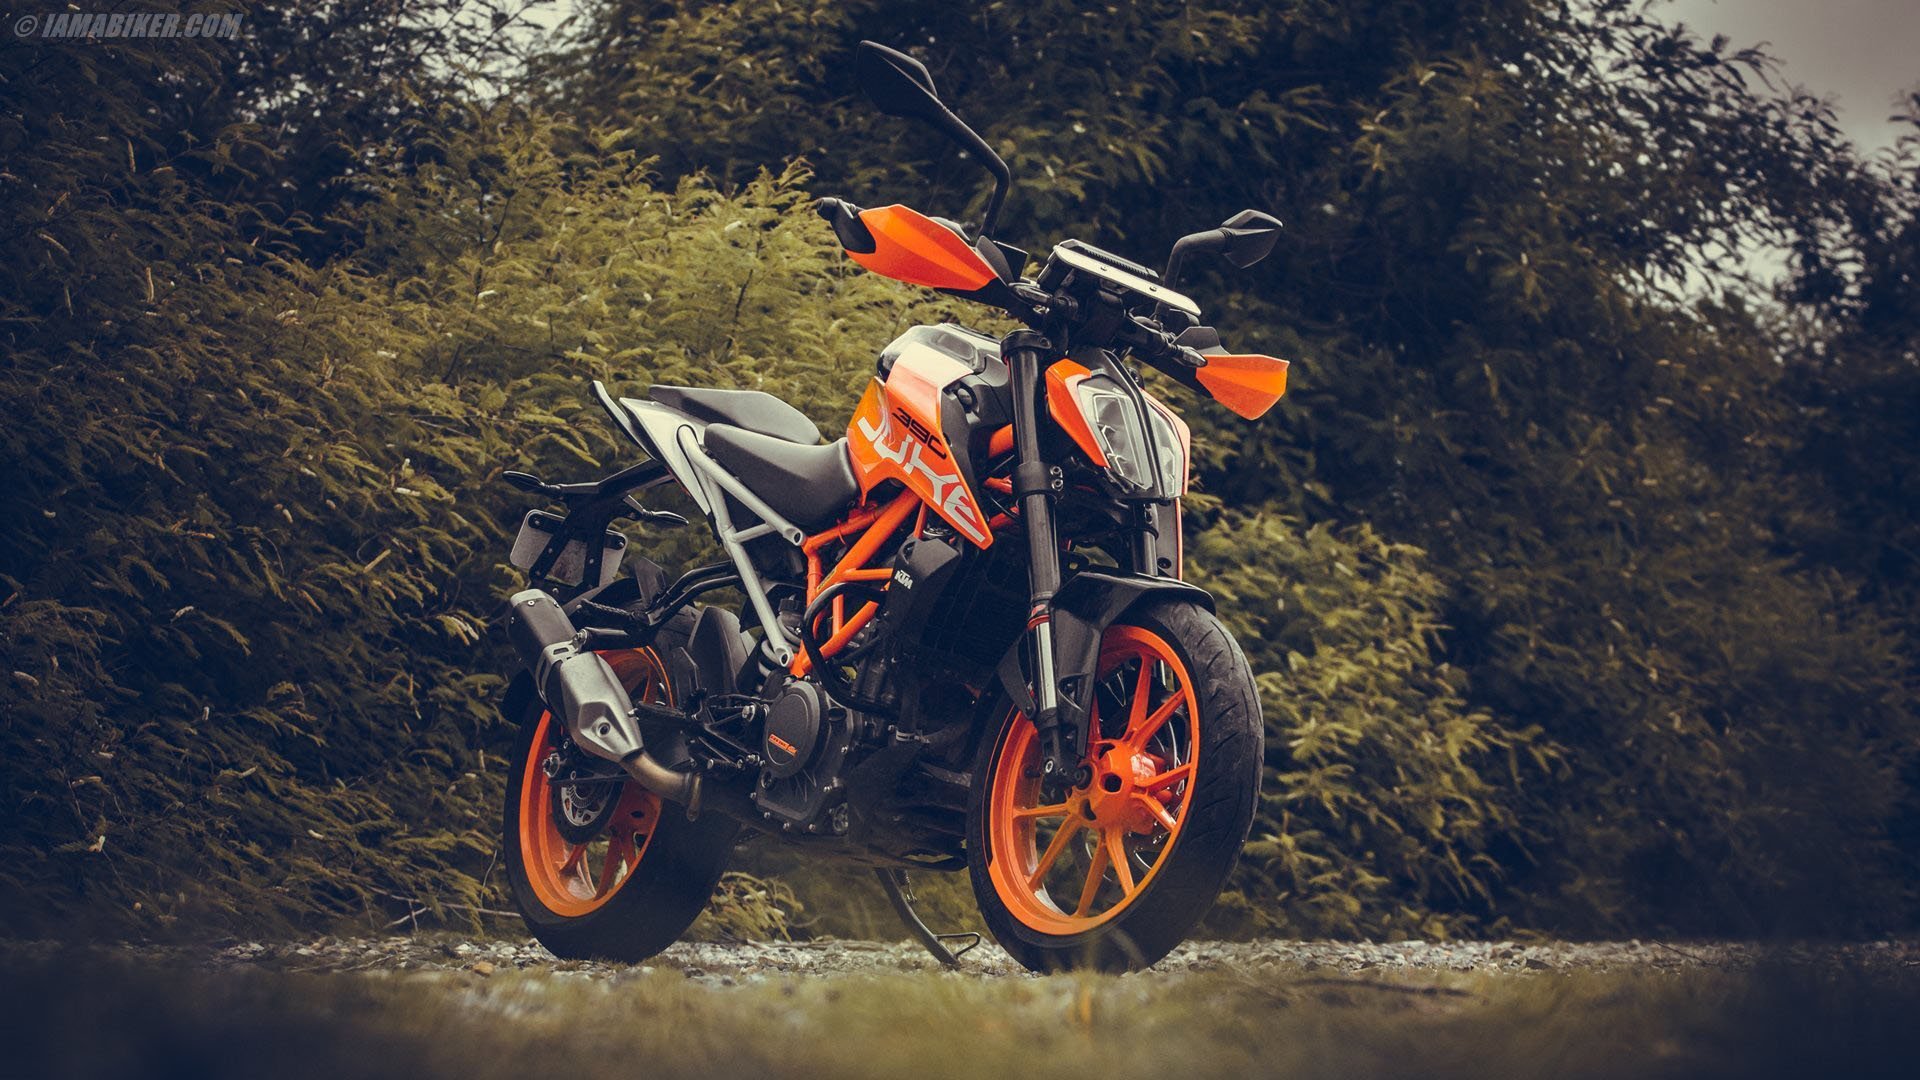 2017 ktm duke 390 hd wallpapers | iamabiker